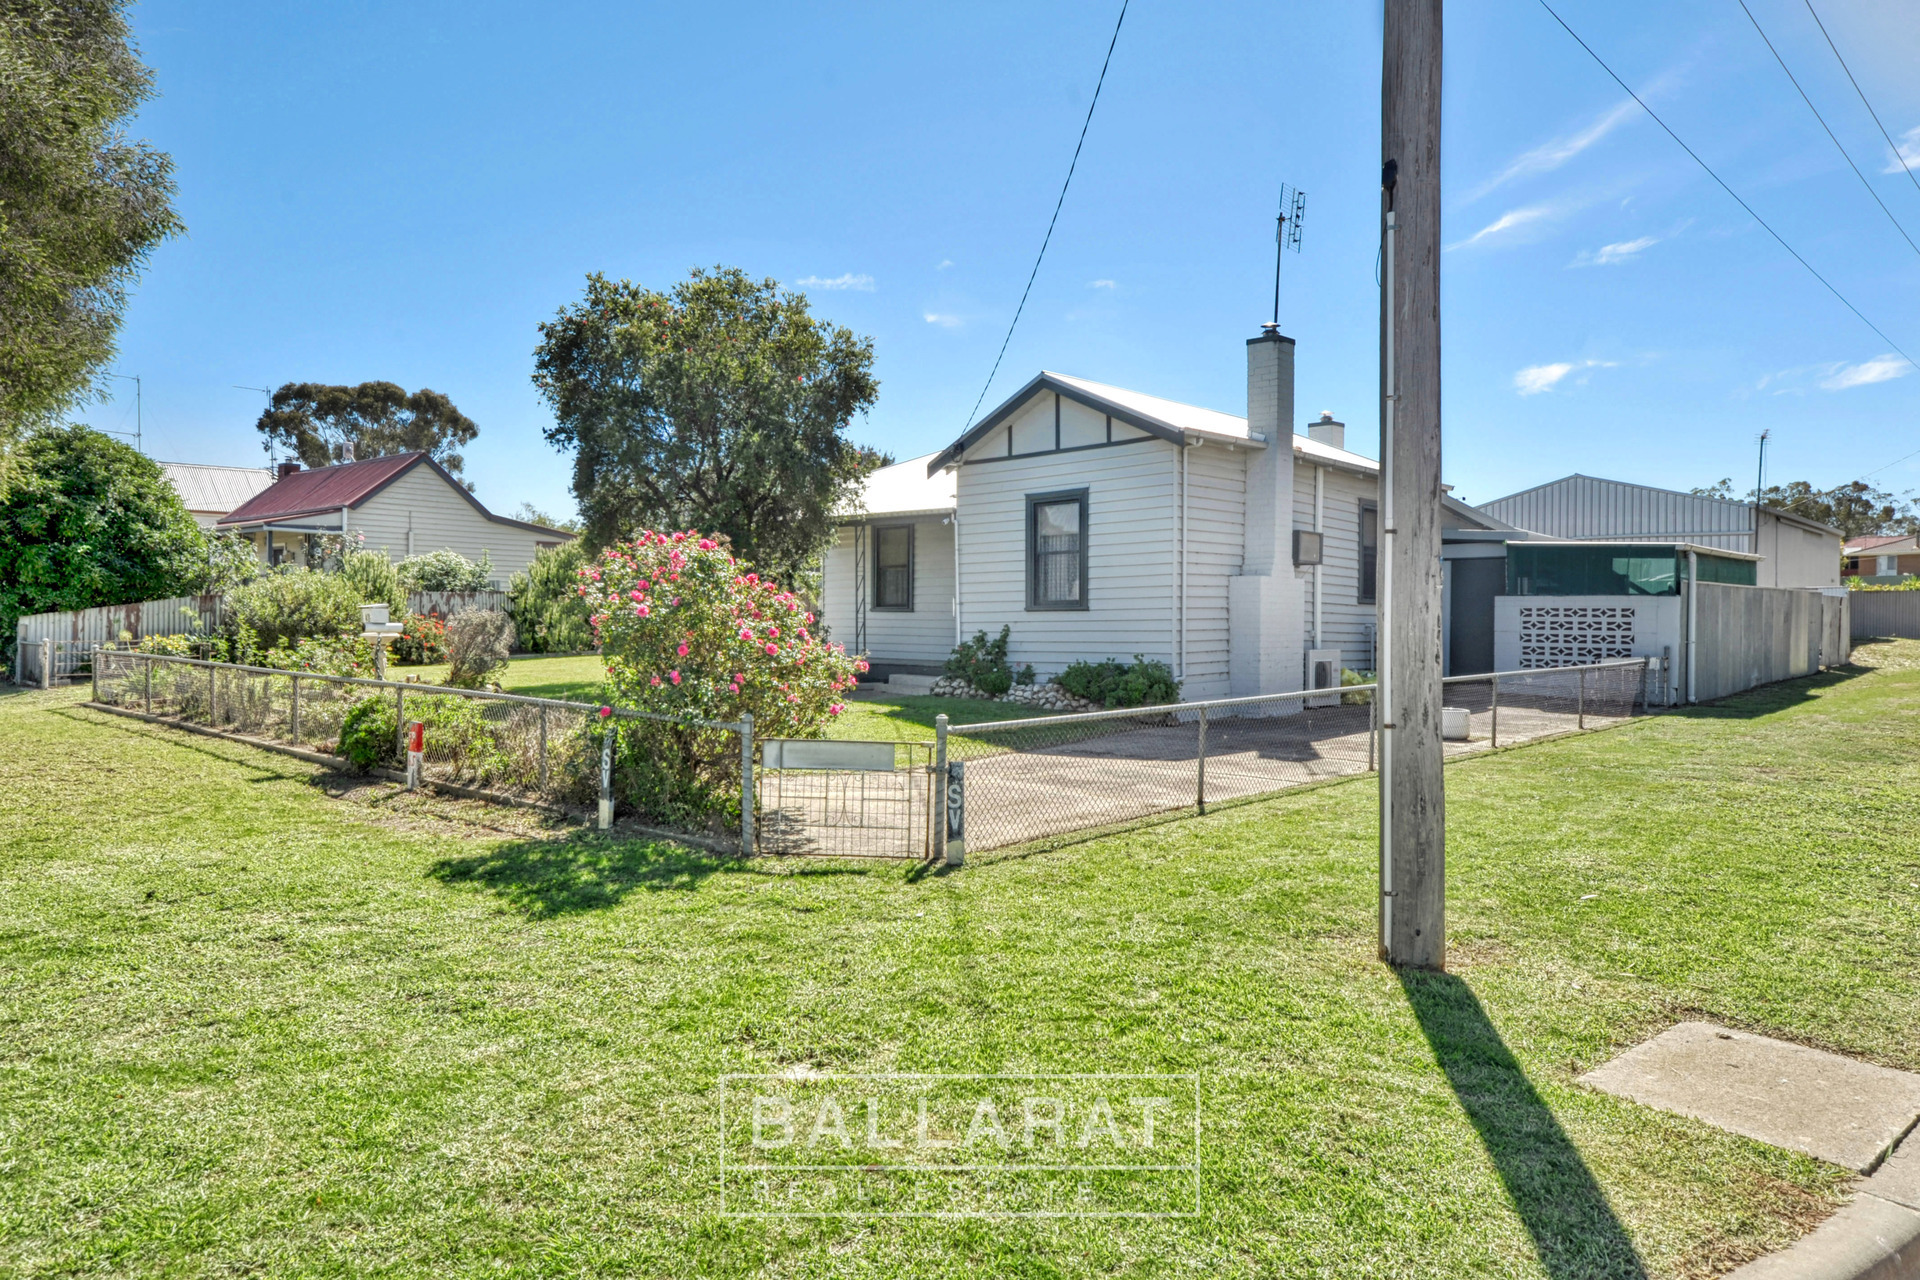 42 Barkly Street Dunolly